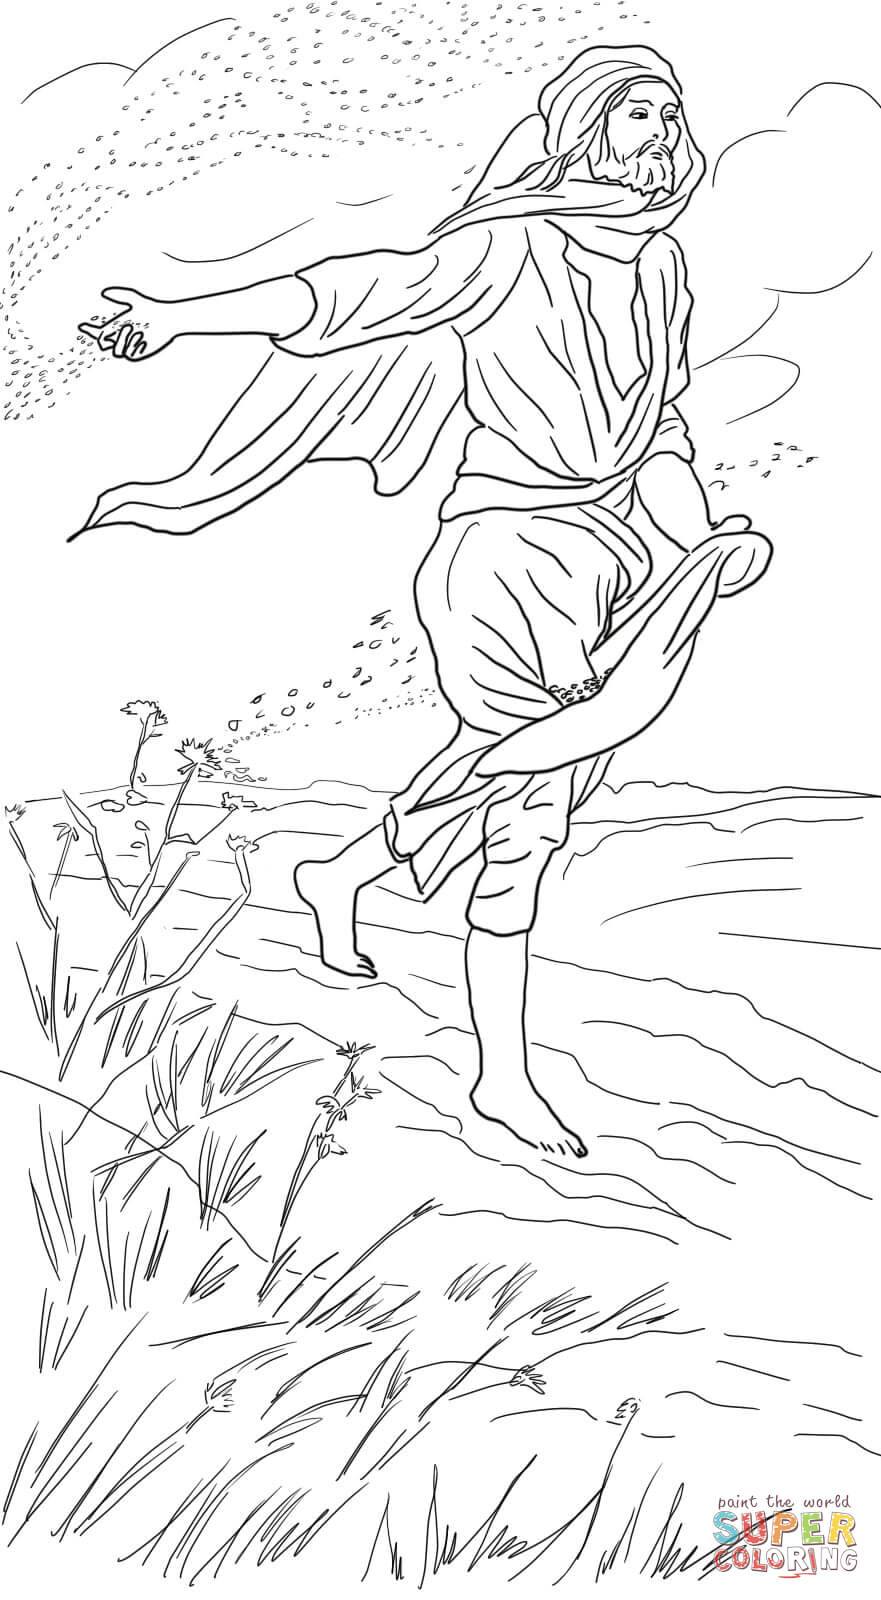 Parable Of The Sower Coloring Page Free Coloring Pages Download ...